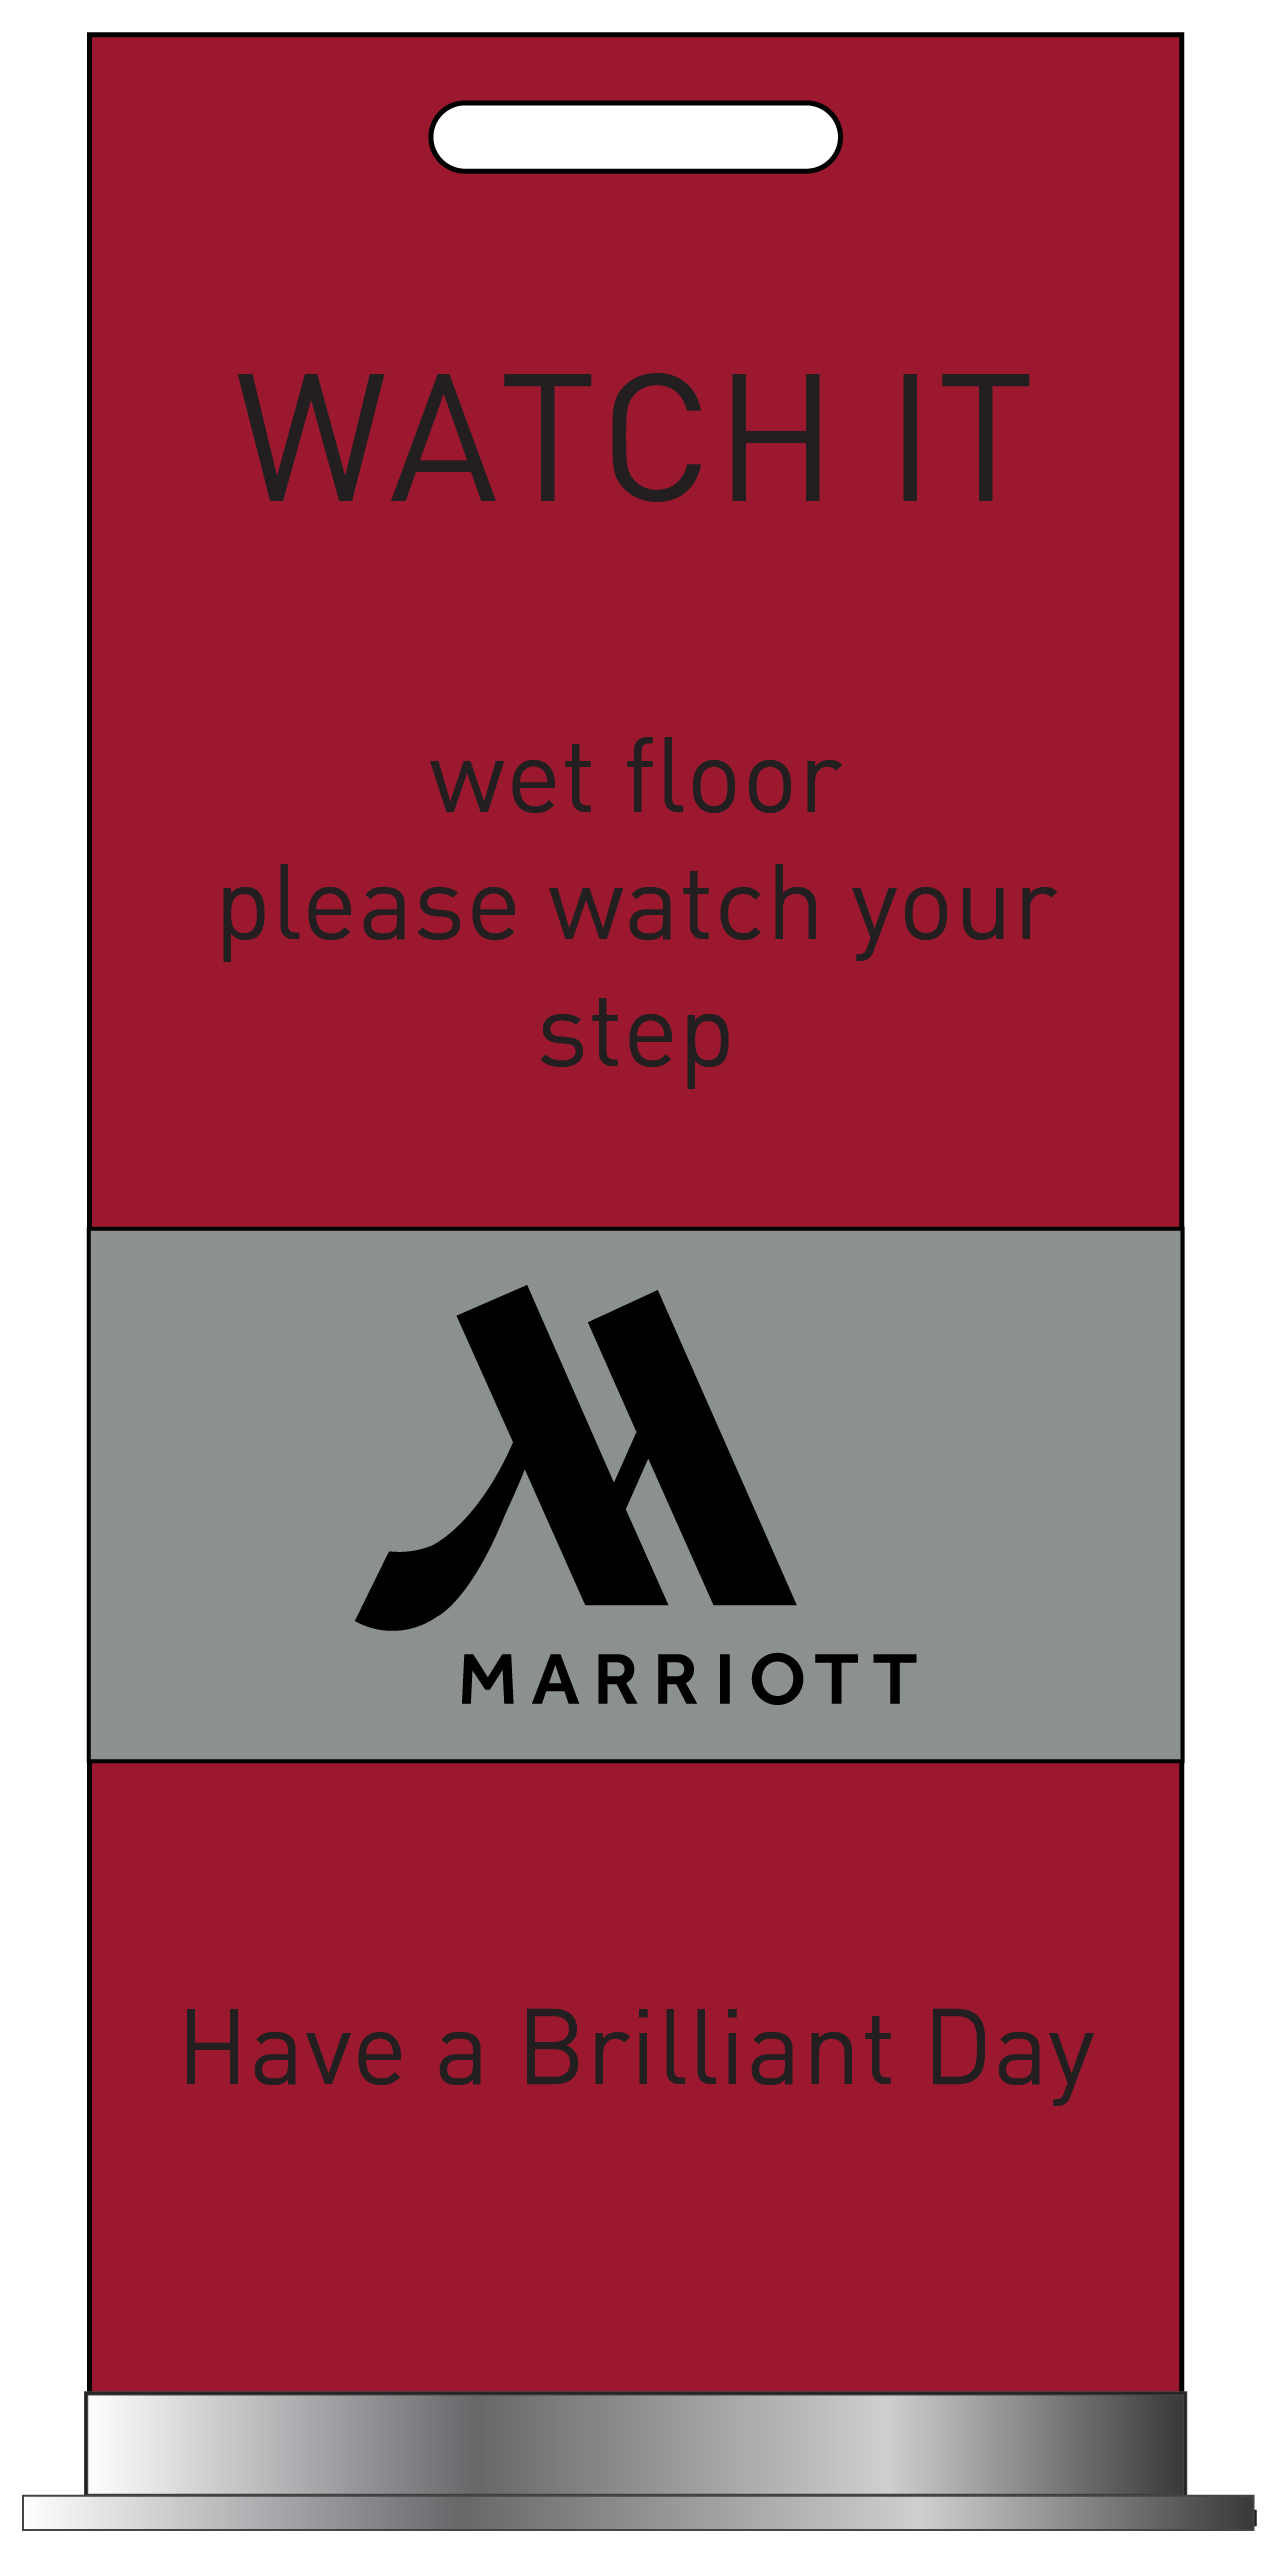 MH-WETFLOOR-WATCH